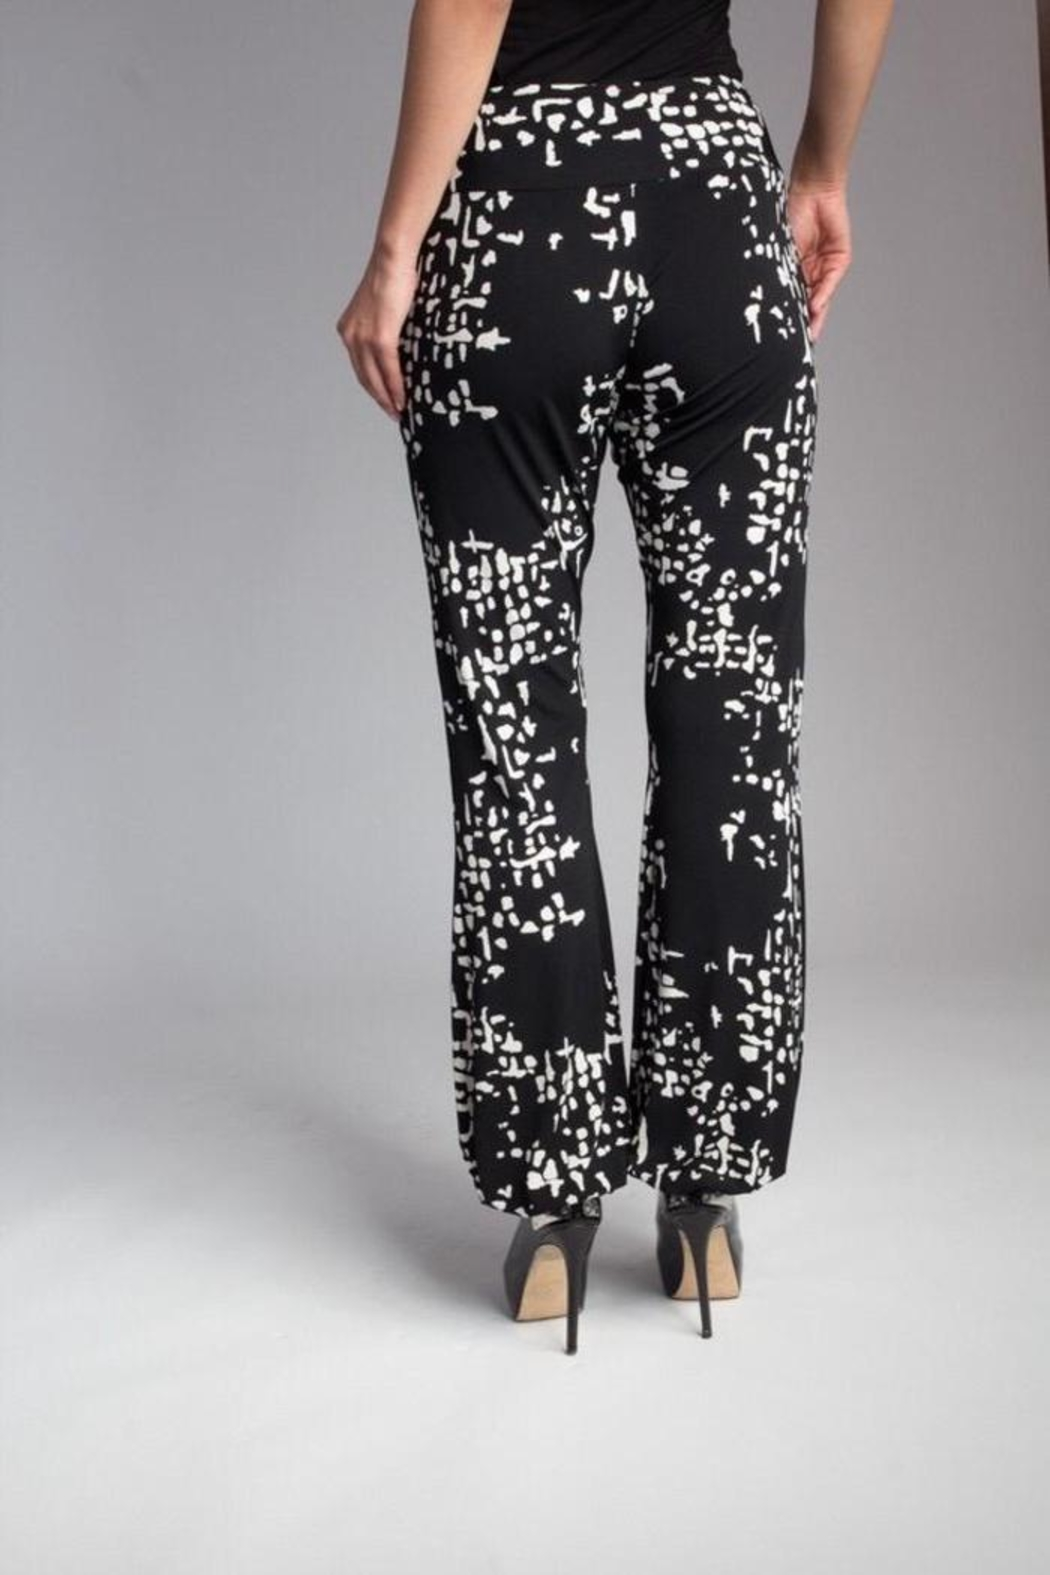 Love's Hangover Creations Trendy Yoga Pants - Front Cropped Image